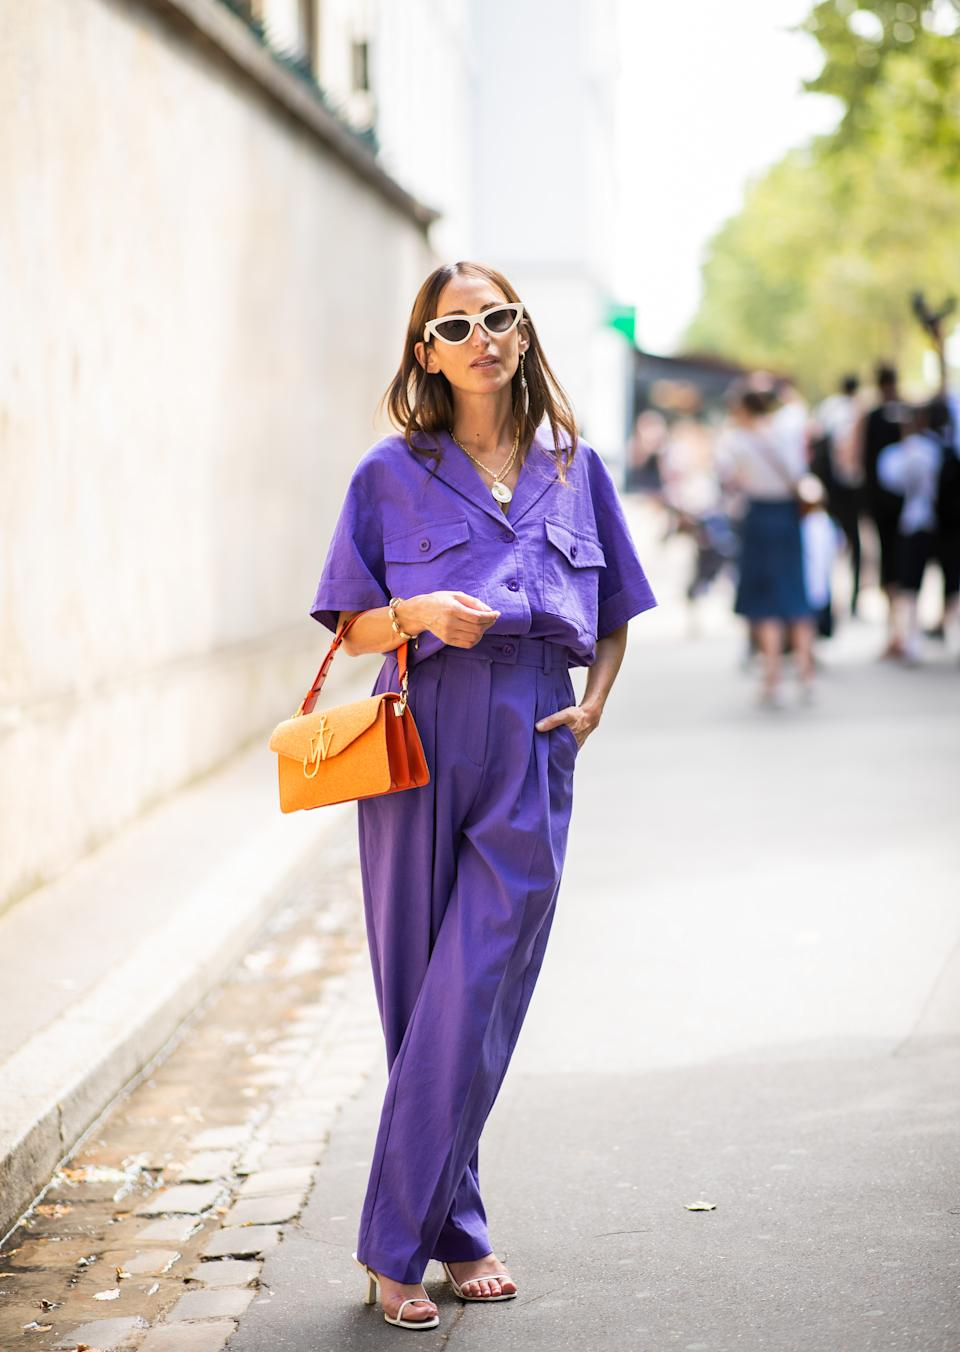 PARIS, FRANCE - JULY 02: A guest wearing purple pants and button shirt seen outside Dior on day two during Paris Fashion Week Haute Couture FW18 on July 2, 2018 in Paris, France. (Photo by Christian Vierig/Getty Images)